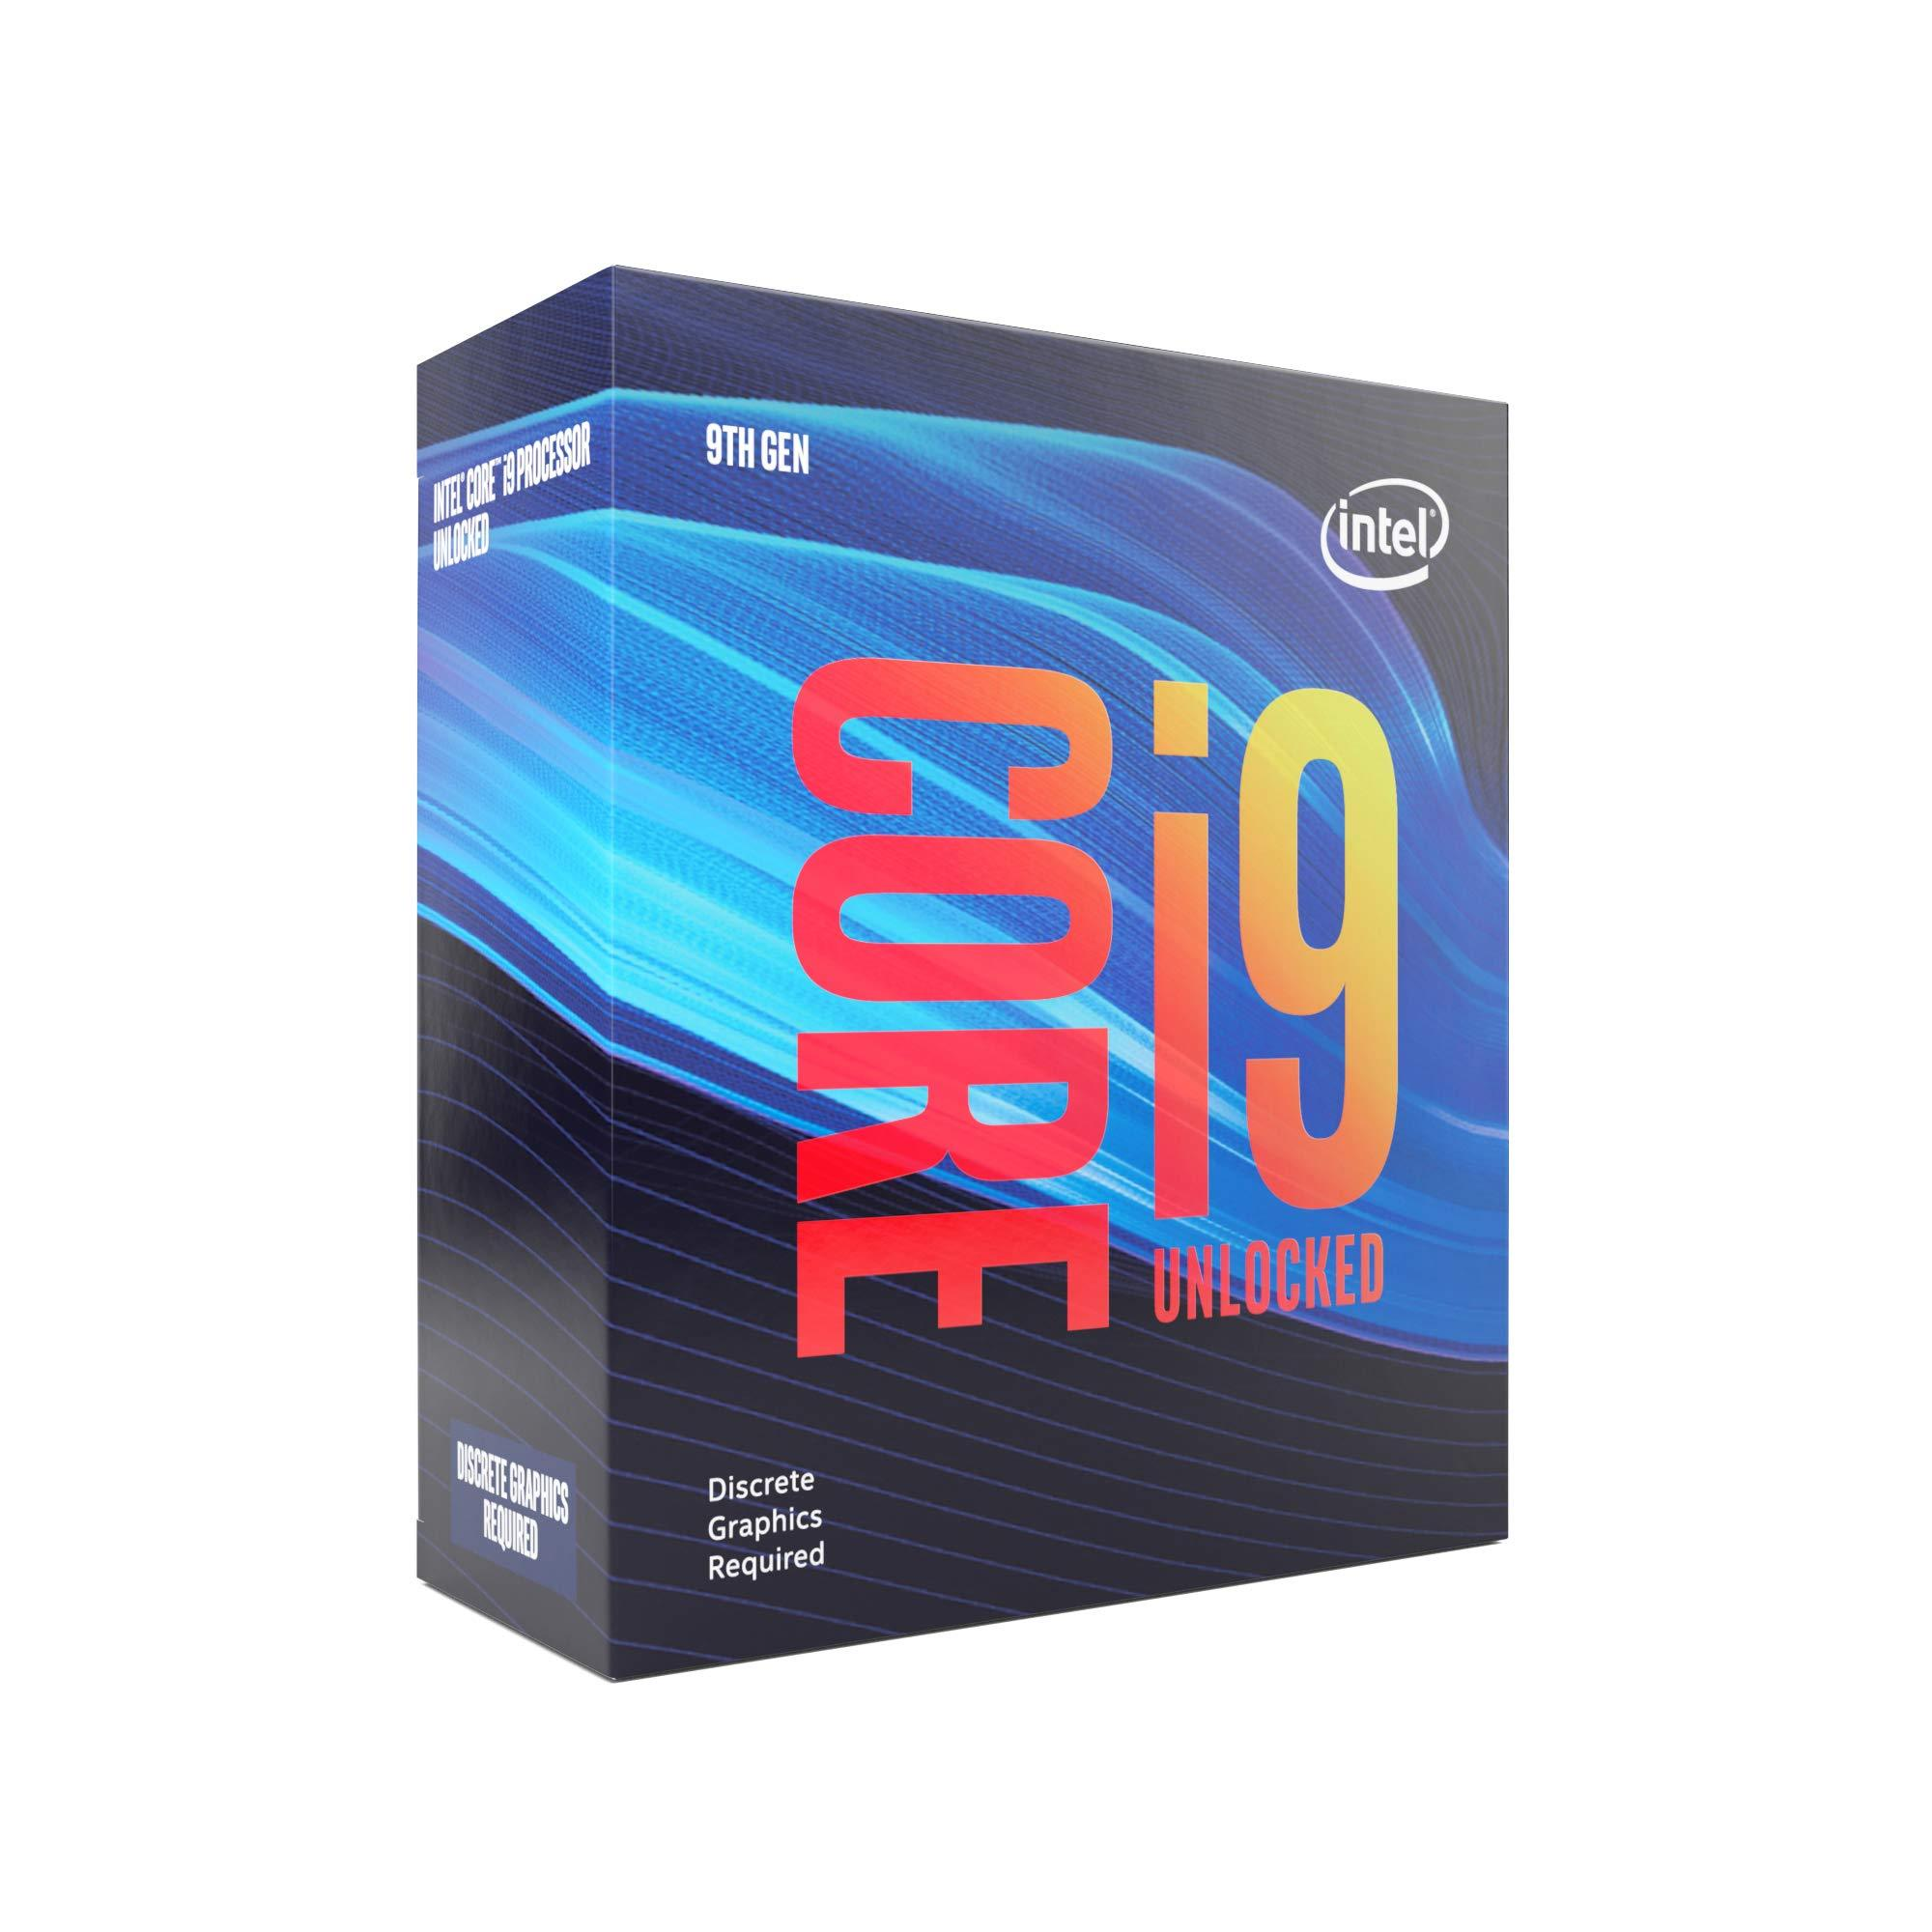 Intel Core i9-9900KF, 8 Core, 16 Threads, 3.6GHz,LGA1151 CPU